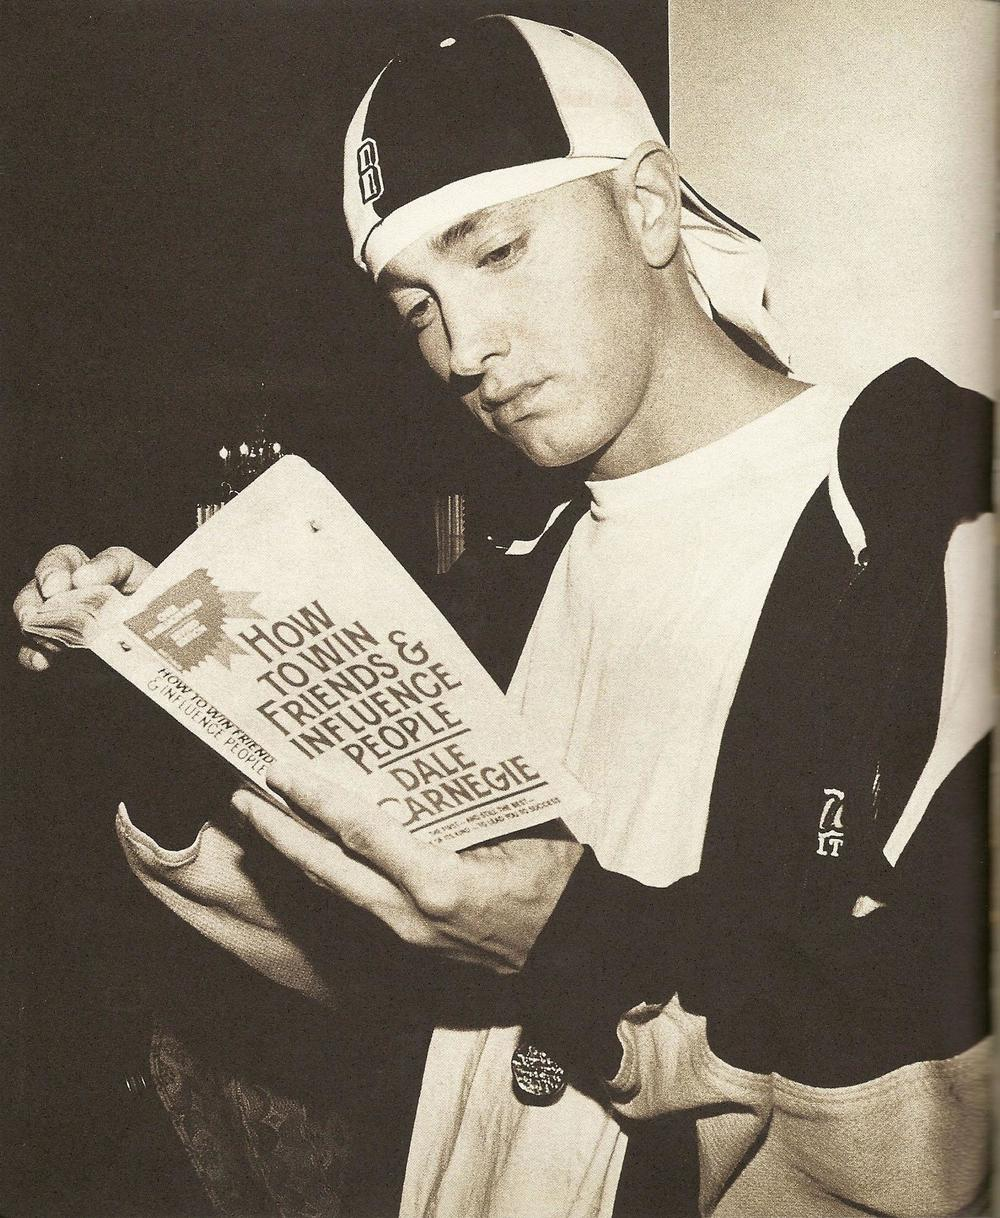 Proof of Eminem's literary prowess (via Fav Images)